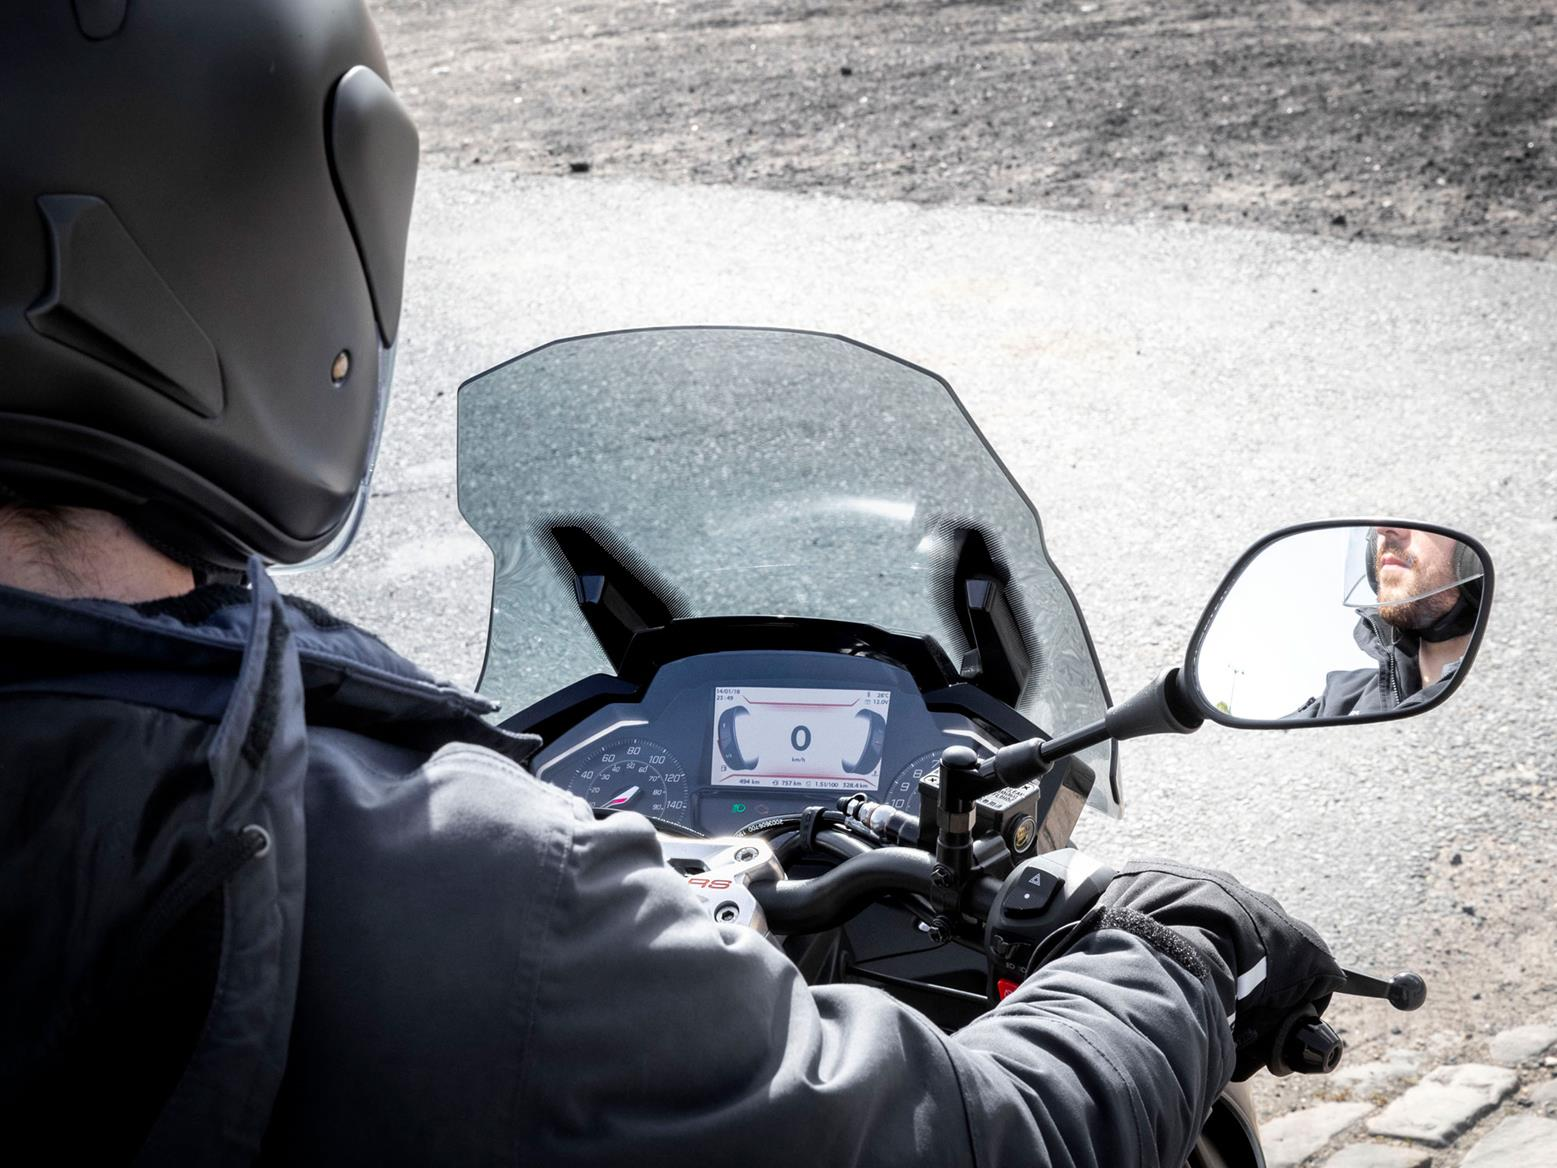 The Peugeot Pulsion 125's instrument cluster features an inverted rev counter like the firm's cars